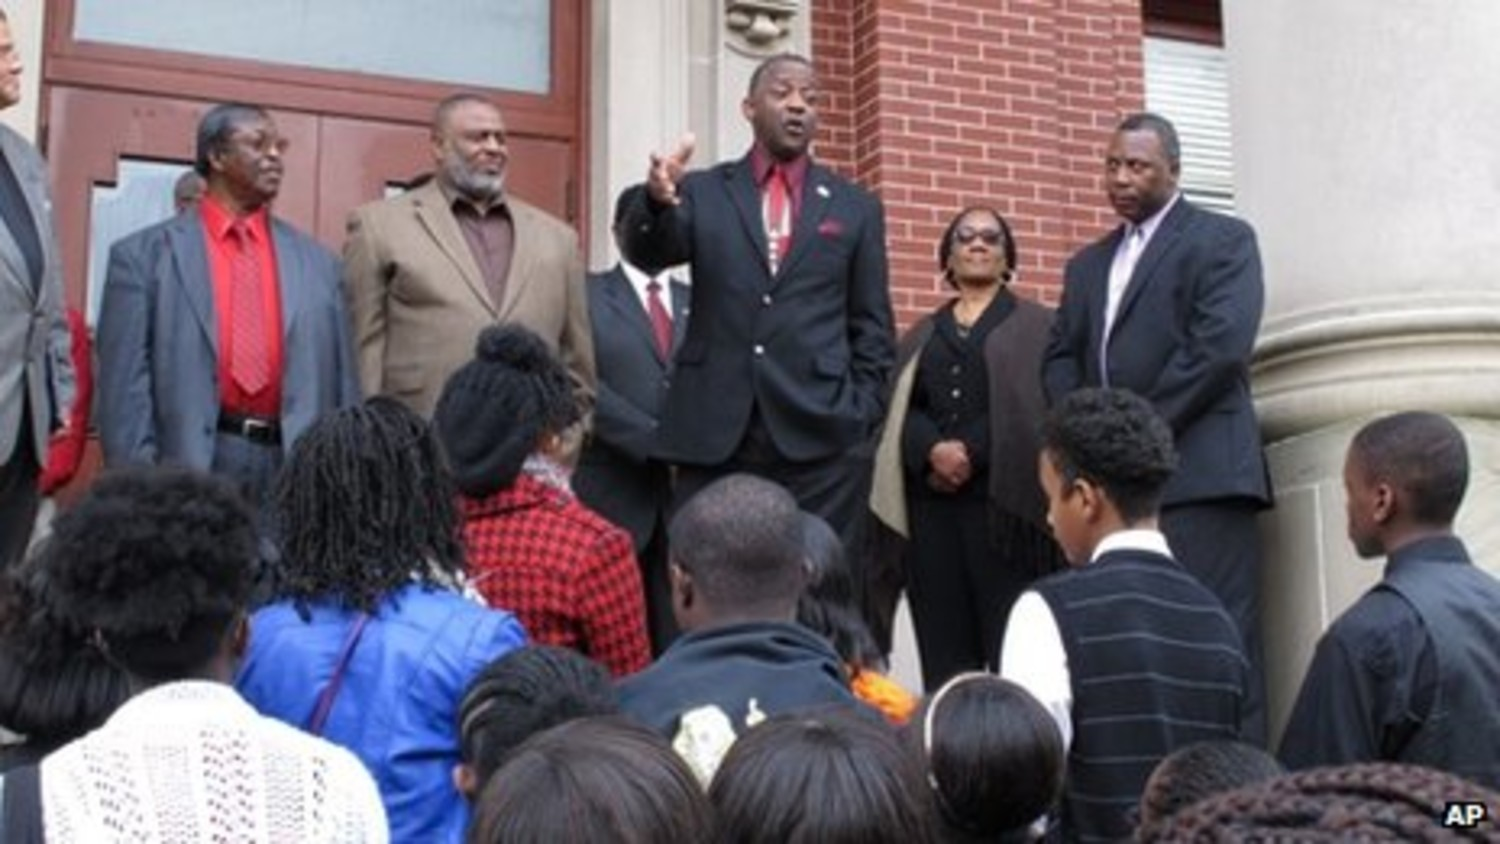 ASSOCIATED PRESSLocal historian George Frierson speaks on the steps of the Clarendon County Courthouse in 2013 during a protest asking for the exoneration of George Julius Stinney Jr.